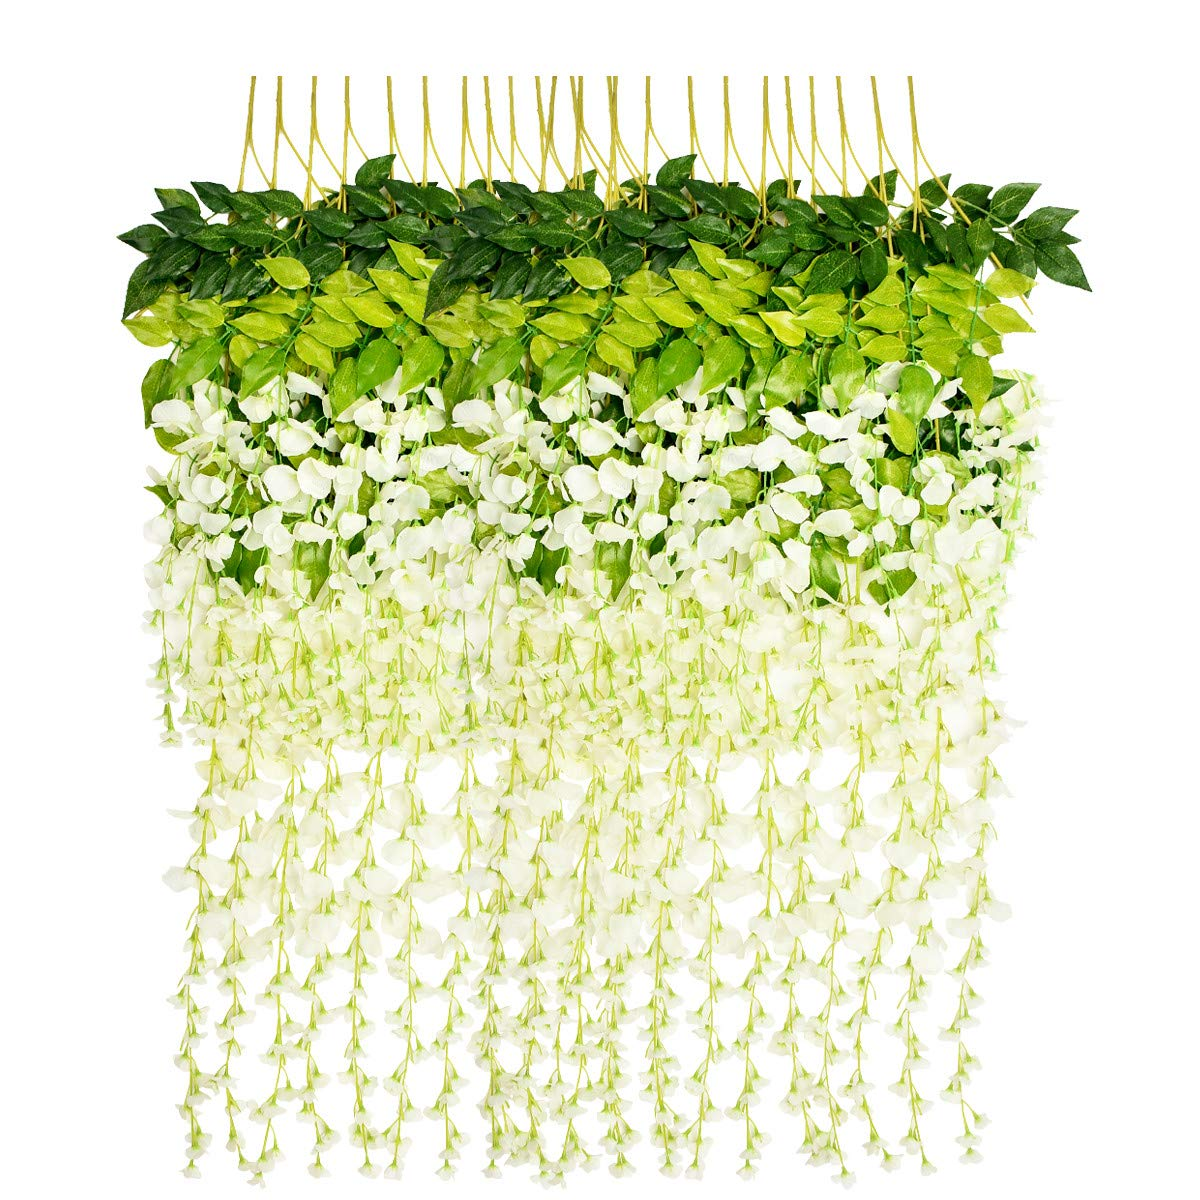 Marcherry Artificial Flowers 12 Pack 3.6 Feet Rattan Strip Artificial Fake Wisteria Vine Home Kids Room Garden Hotel Office Wedding Decor Wall Crafts Art Party Decoration (White)